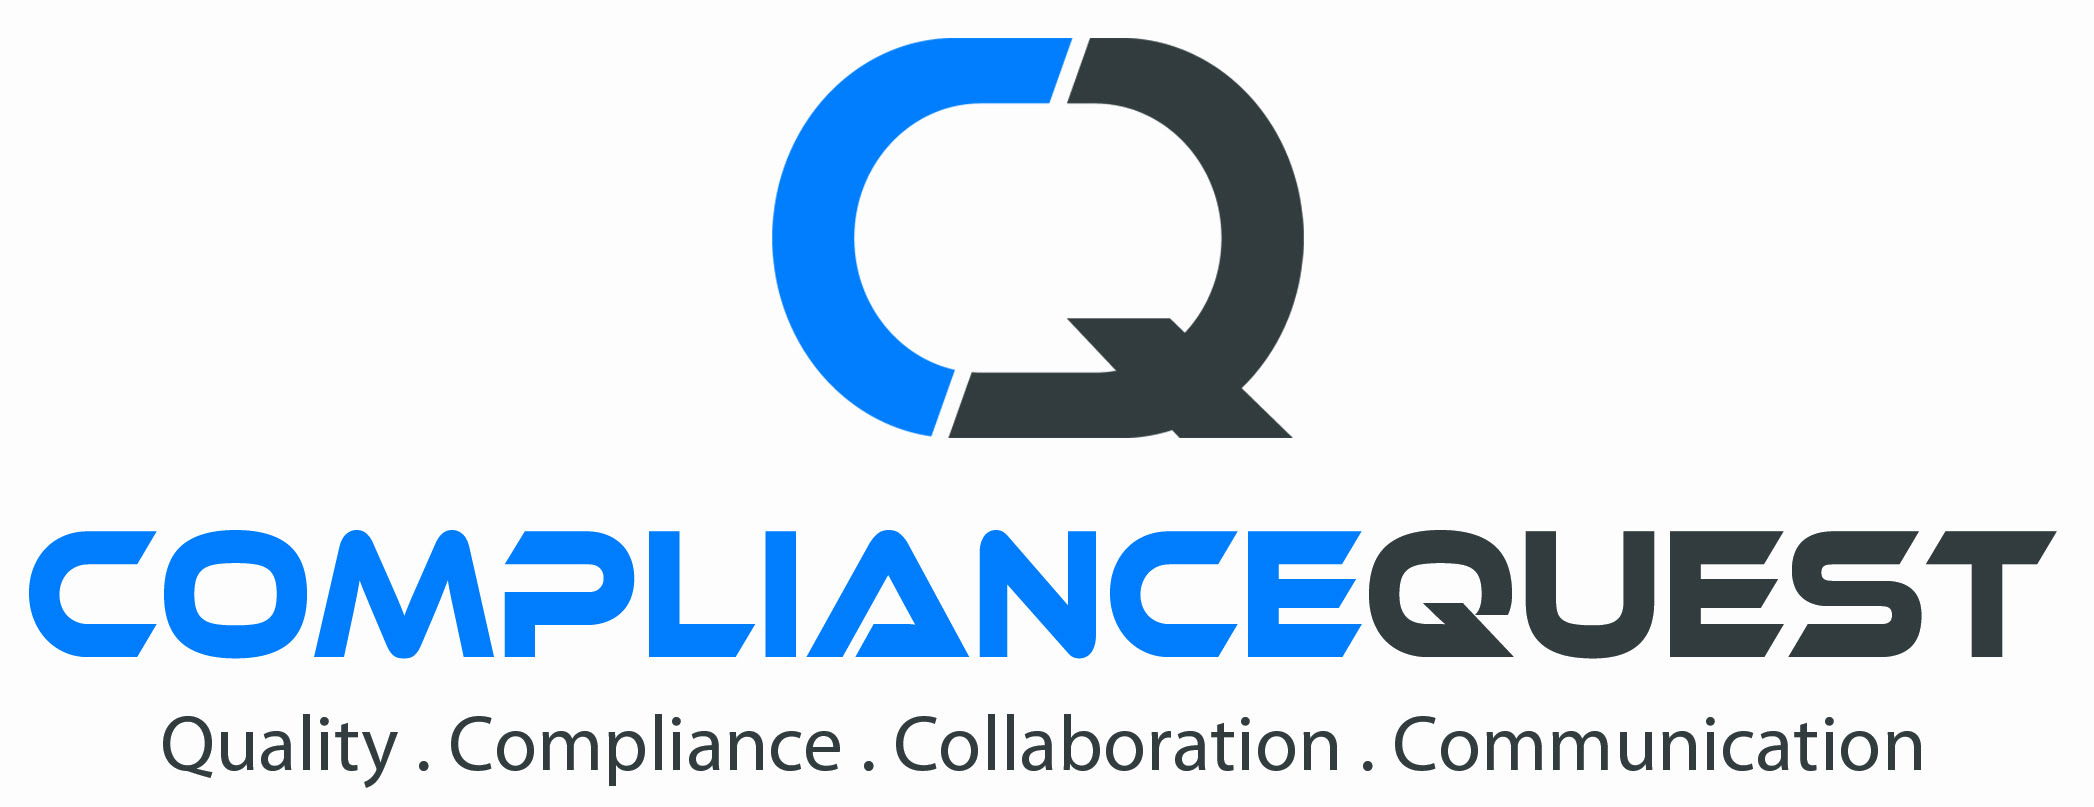 ComplianceQuest Announces the Launch of CQ Care FastStart EMDS Solution – a Free Service to Help Companies Overcome Business Challenges Caused by the Current COVID-19 Pandemic